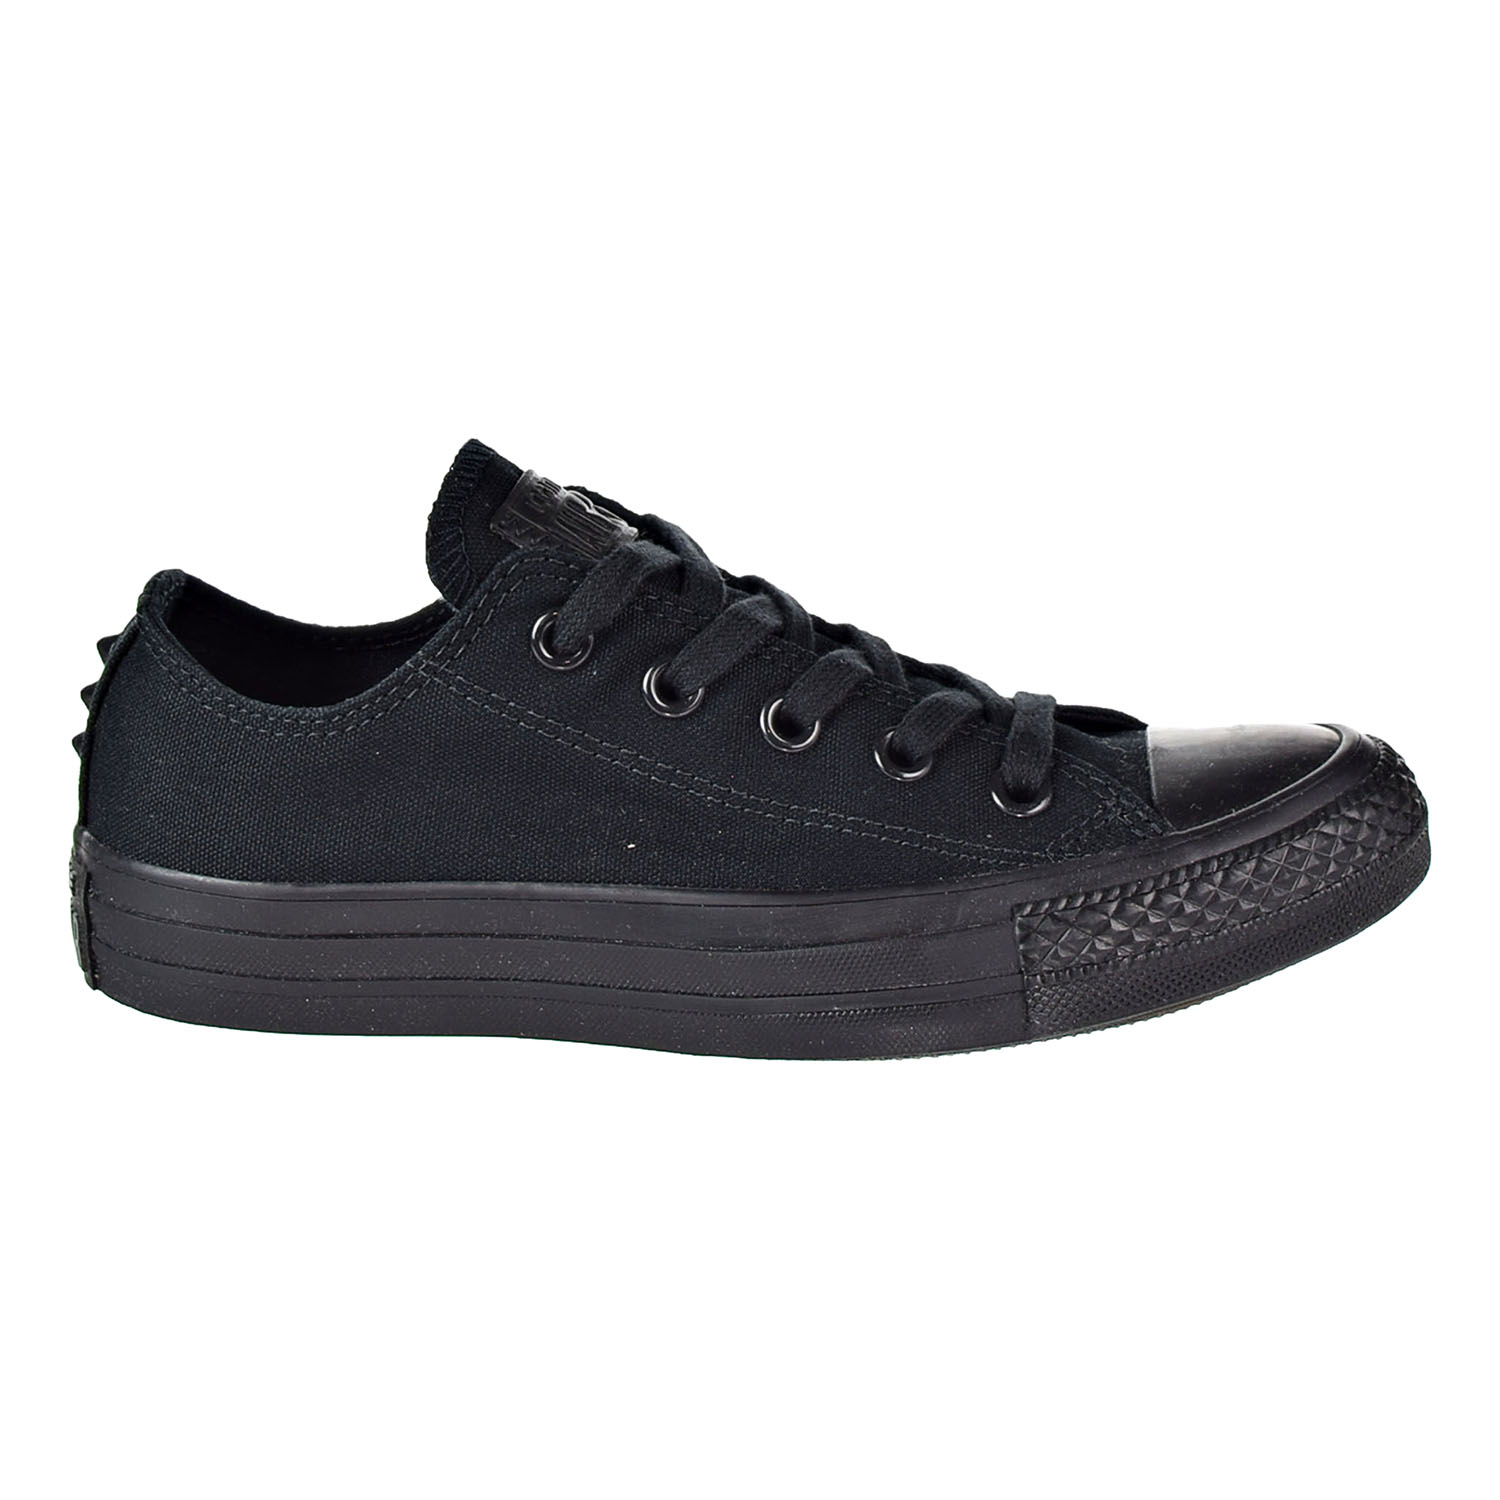 Converse Chuck Taylor All Star Ox Women's Shoes Black/Black 559830f